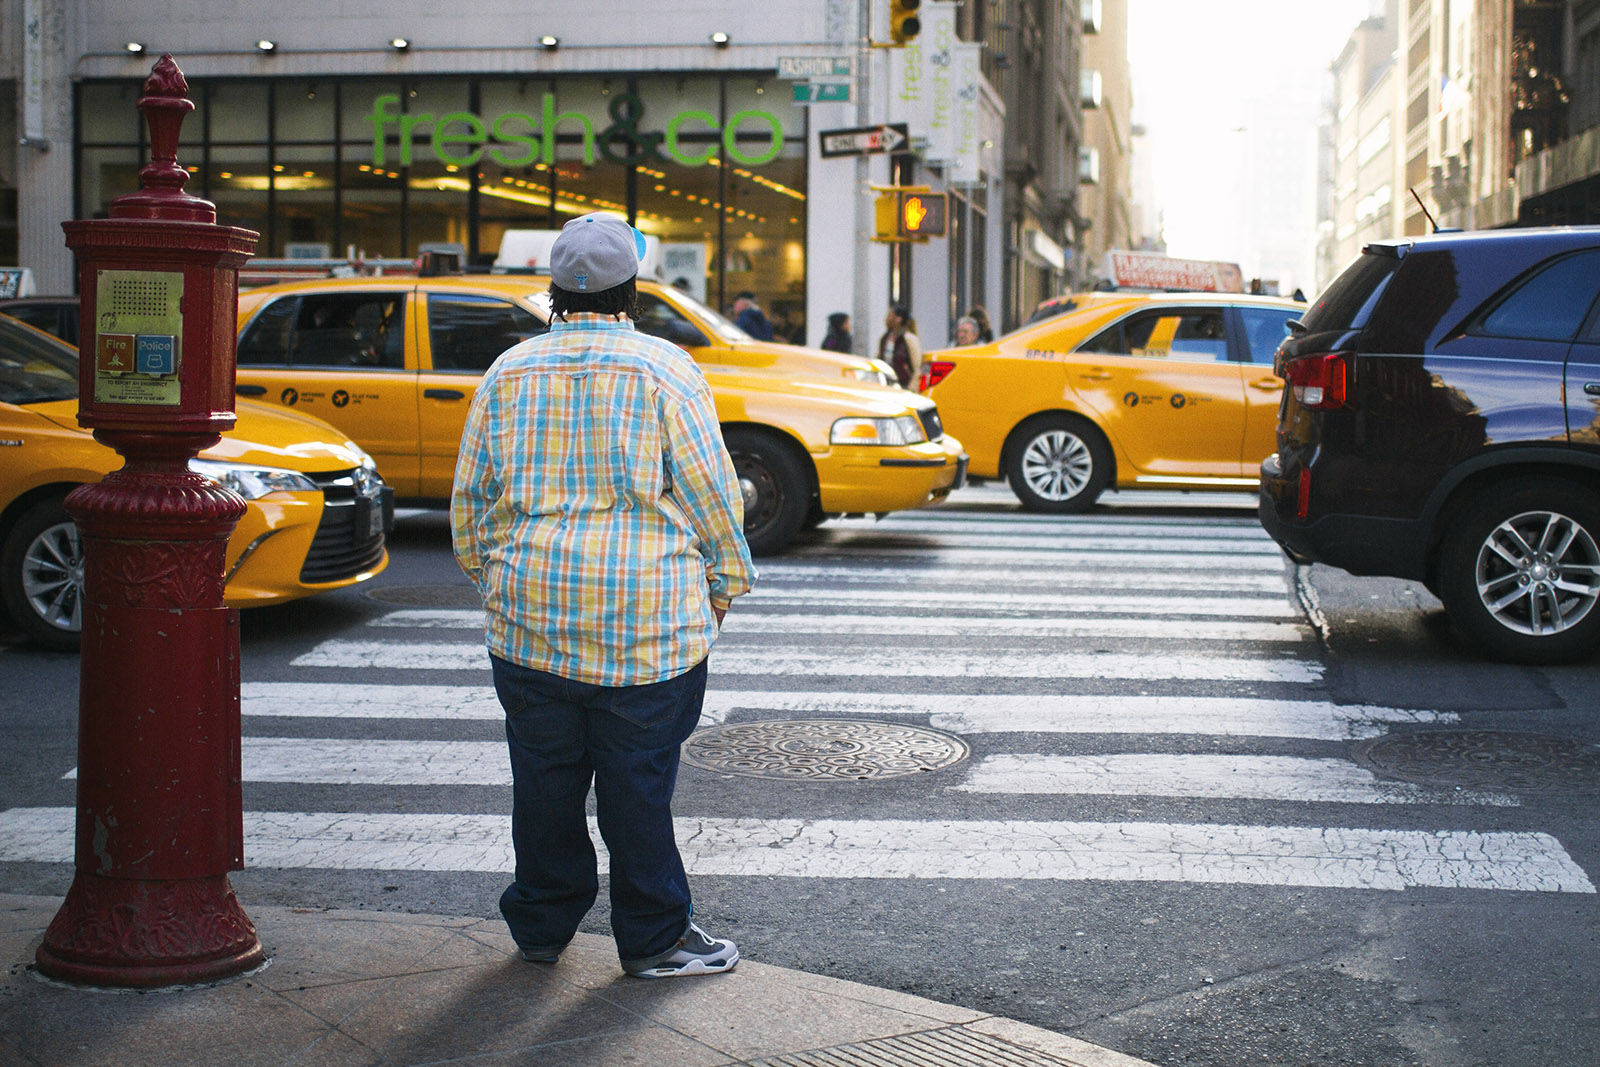 NYC Taxis are still giving twice as many rides as Uber